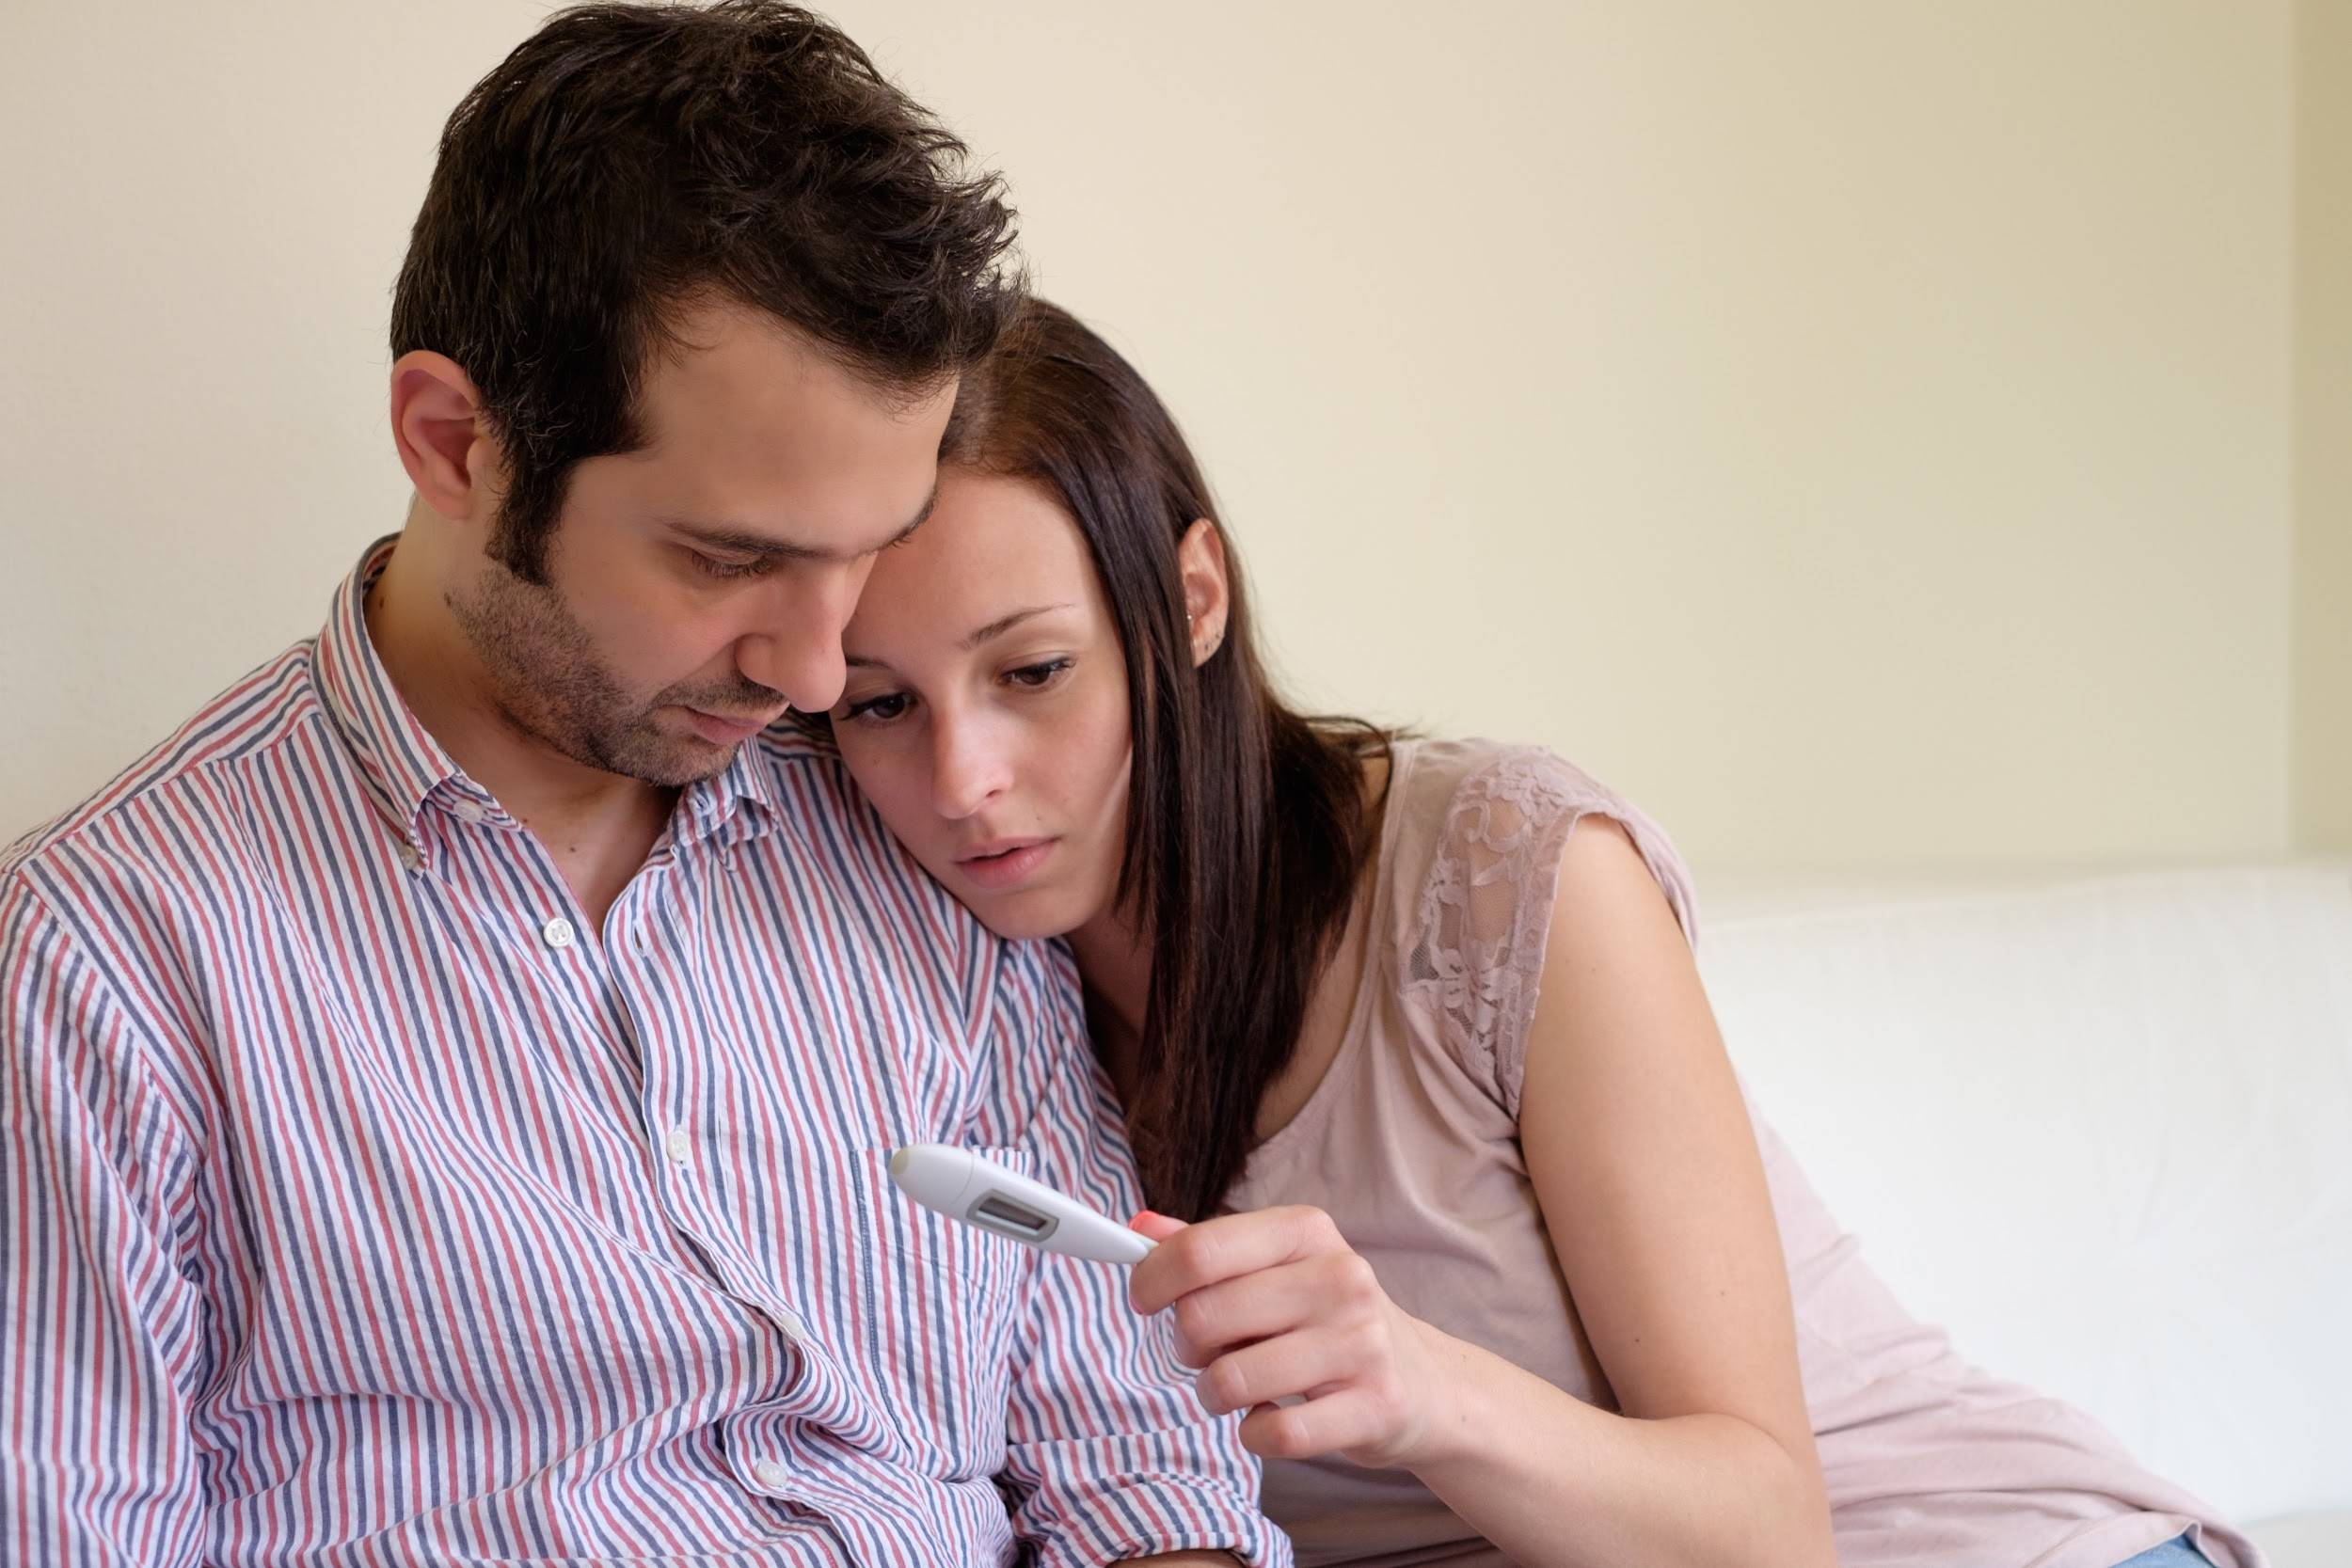 Probable causes of secondary infertility